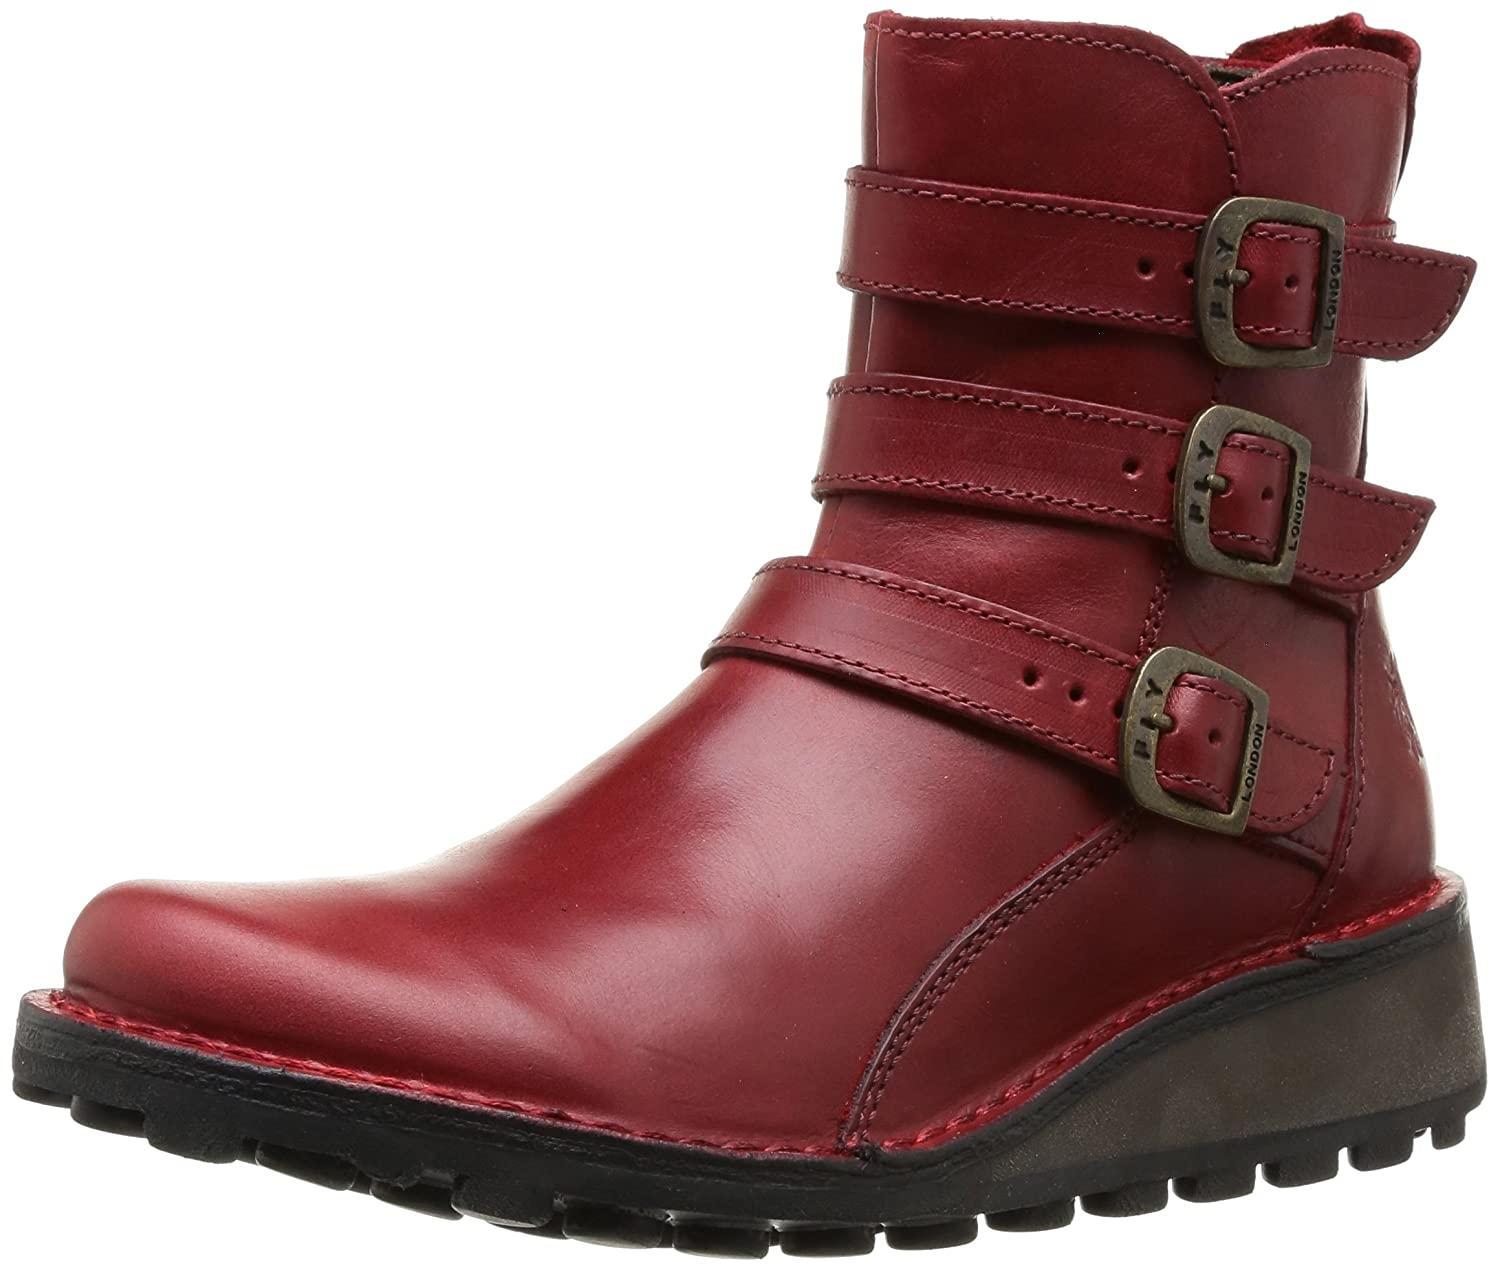 Femmes 19906 Fly London Myso Faible Talons (Red) Fermeture Eclair Faible Hiver Bottines Rouge (Red) affeb87 - shopssong.space